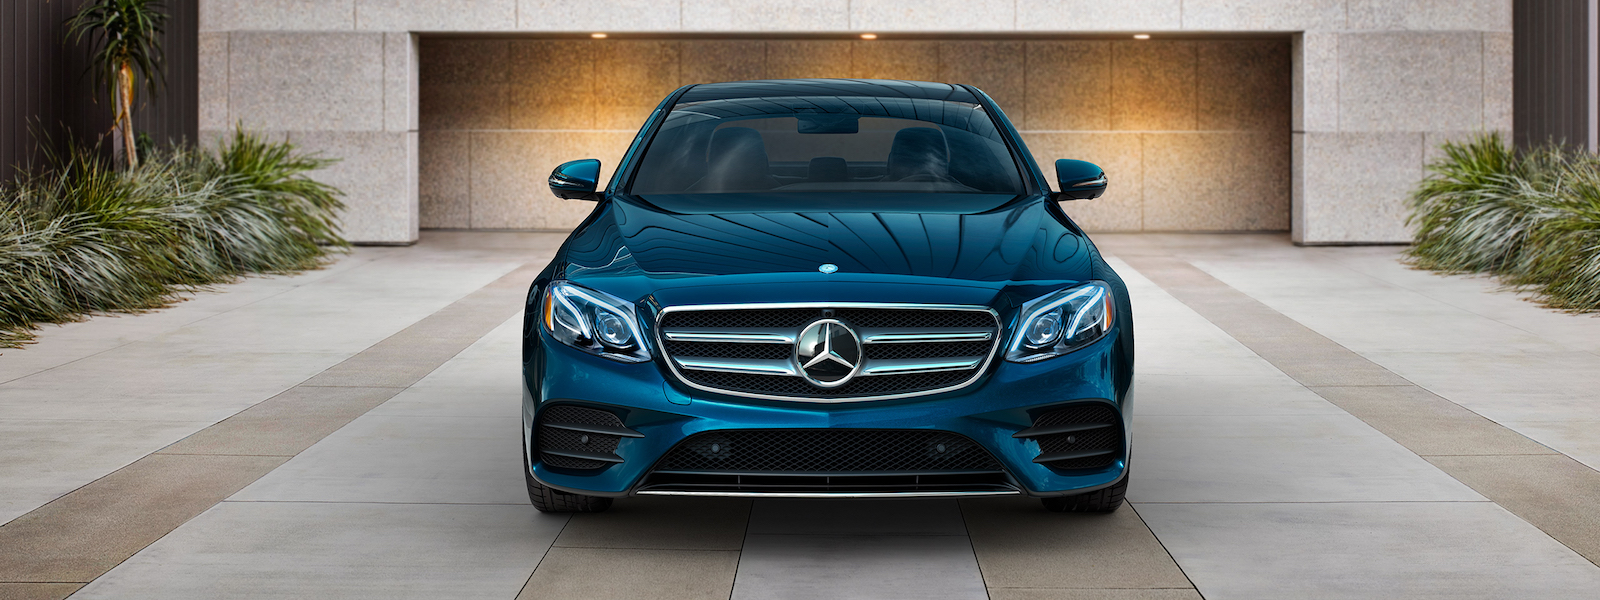 Pre owned cars for sale in laguna niguel ca new used cars for Mercedes benz pre owned vehicles